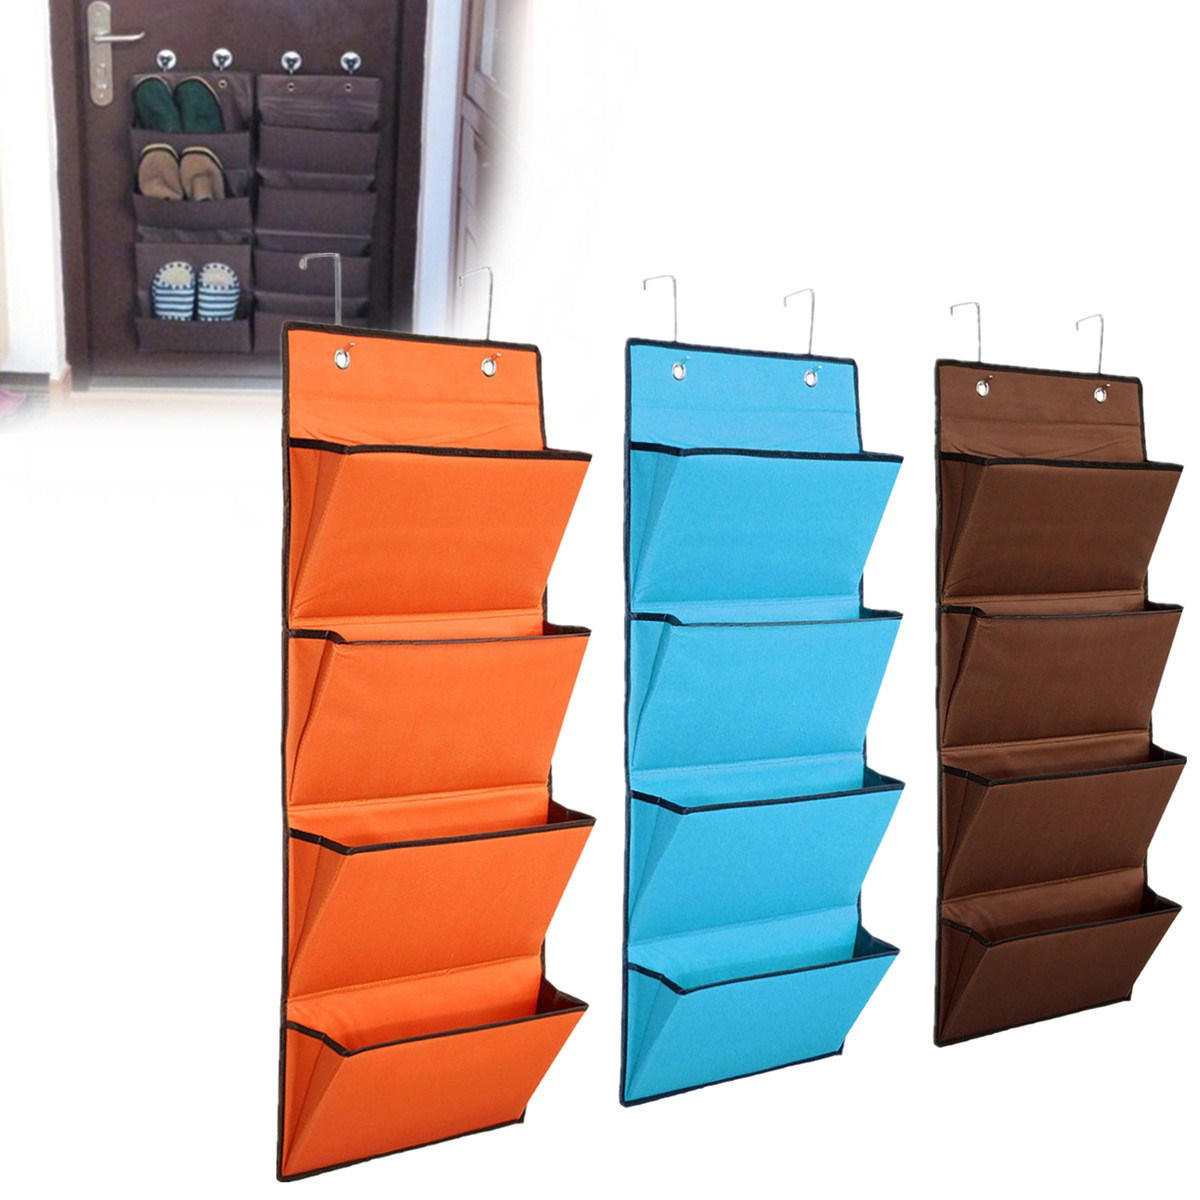 Hanging Storage Bag Book Newspaper Jewelry Organizer Over Door Cloth Shoes Ganchos Para Parede Closet Toy 4 Tier In Bags From Home Garden